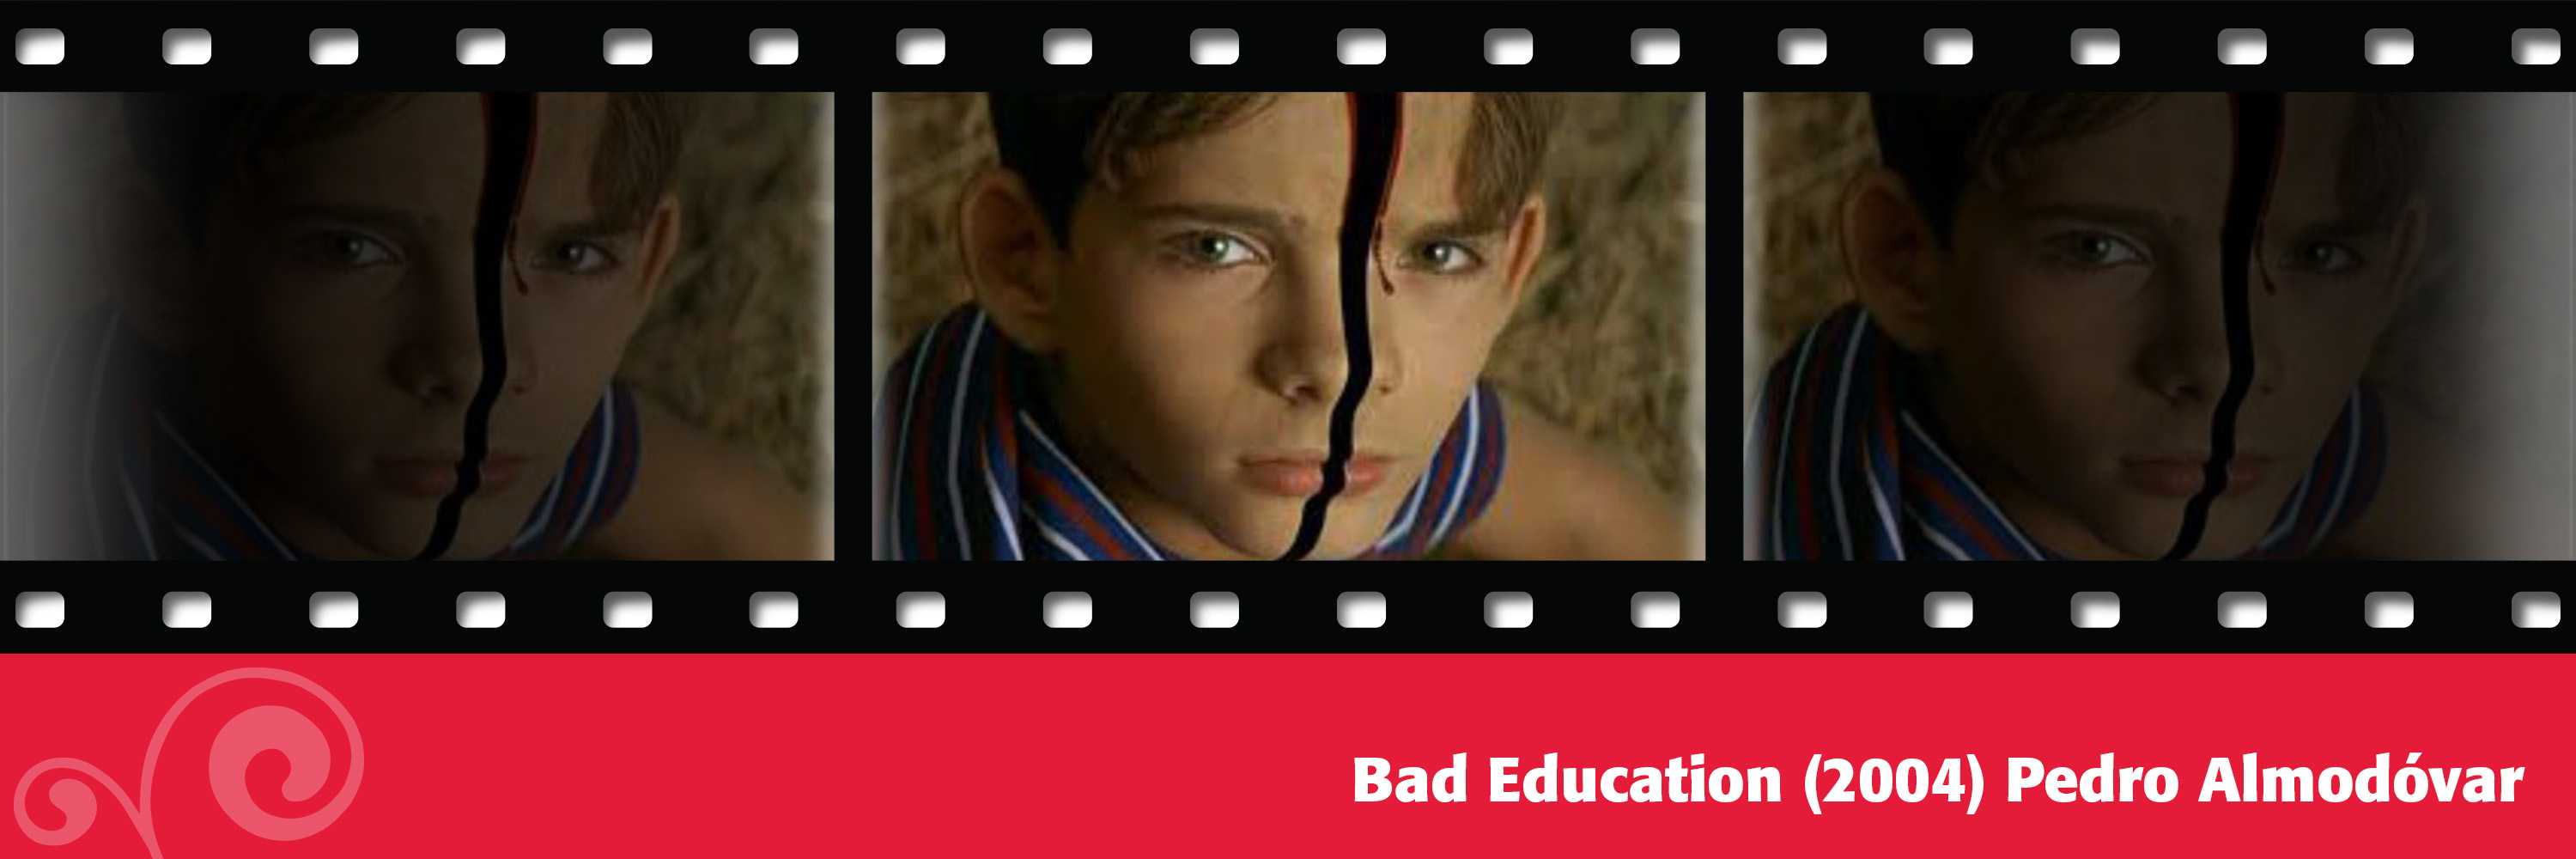 Bad Education (2004) Pedro Almodóvar